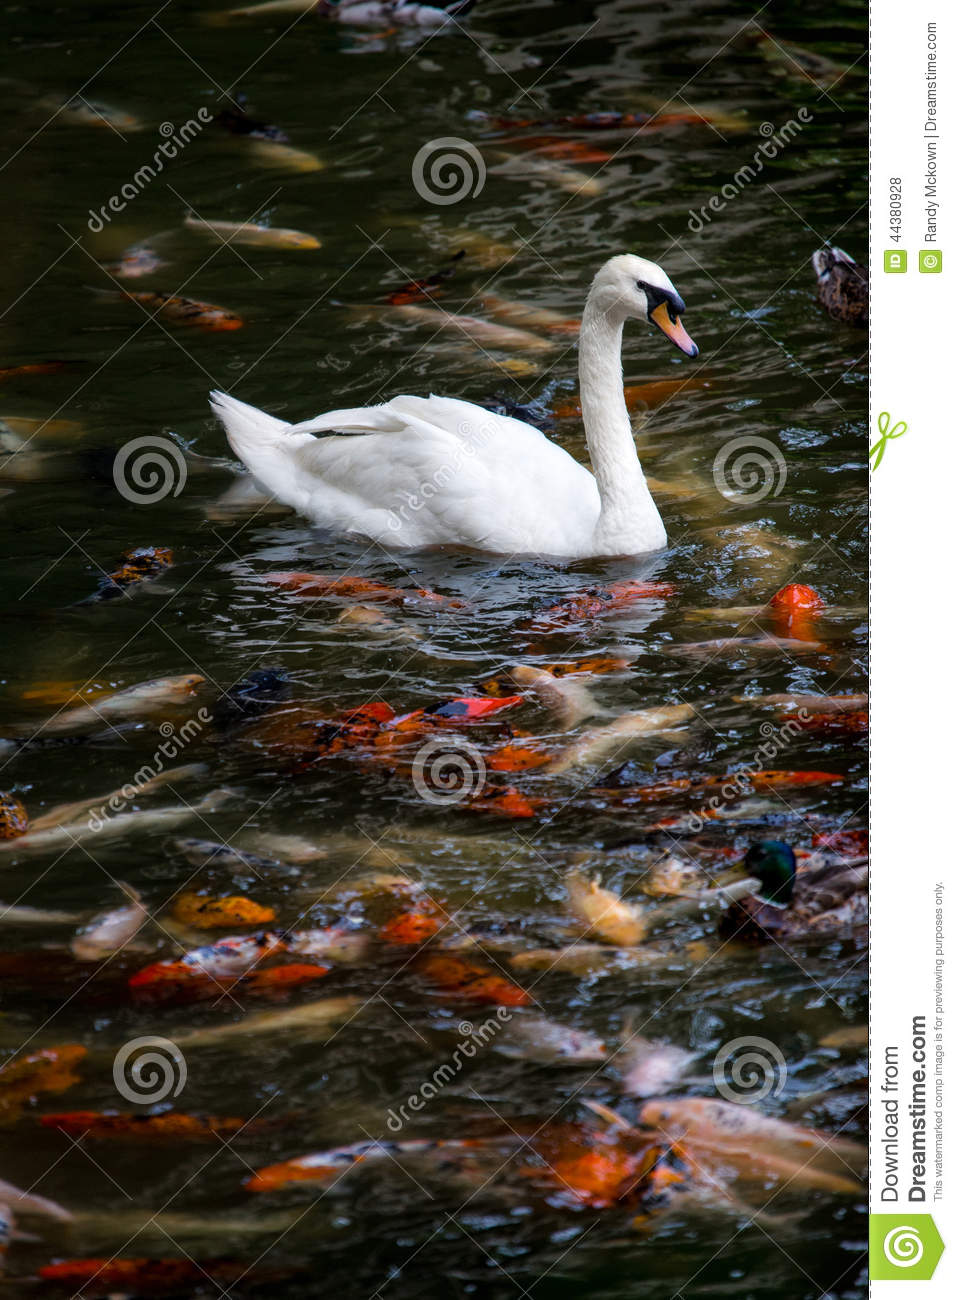 Swan with koi fish swimming in pond stock photo image for Dream of fish swimming